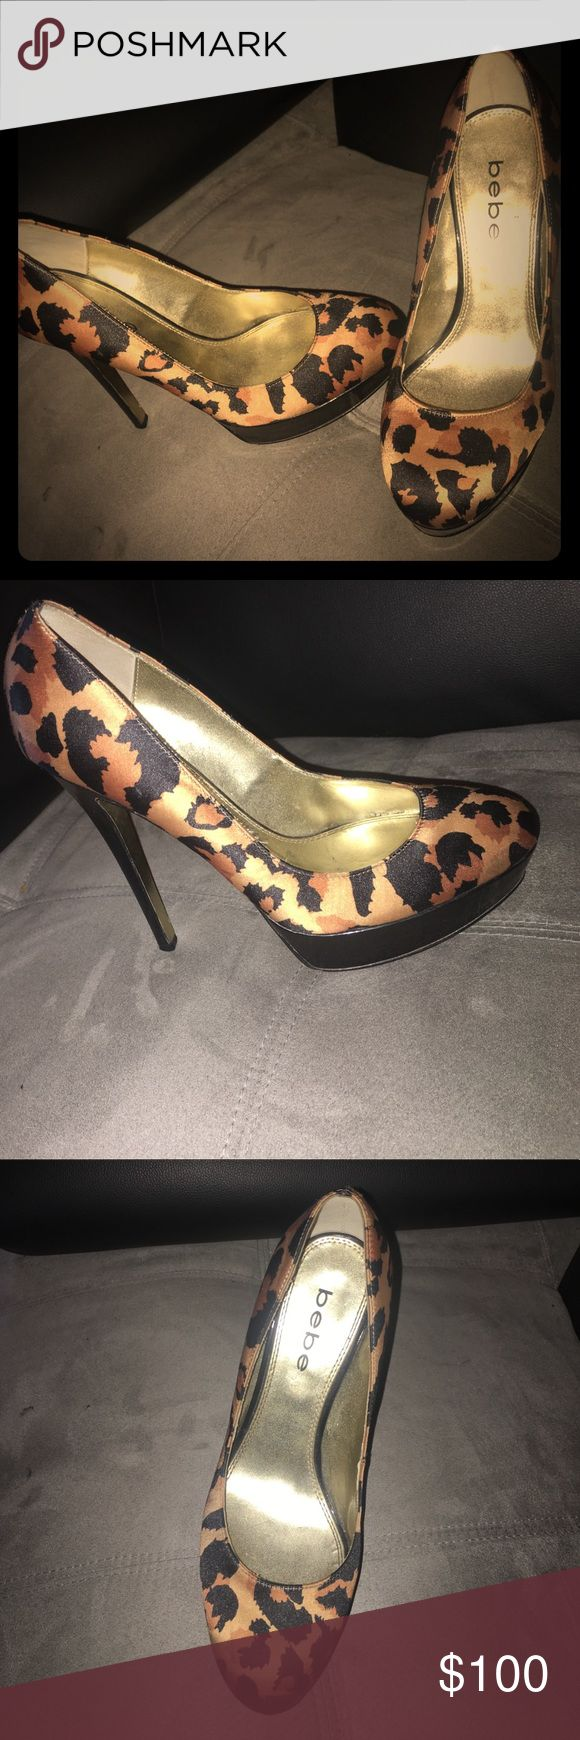 SIZE 8 - BEBE 6 inch heels leopard . It is 6 inches tall and very comfortable    I got it from the actual BEBE store in topanga mall. Only wore it a couple times. Very clean. bebe Shoes Heels